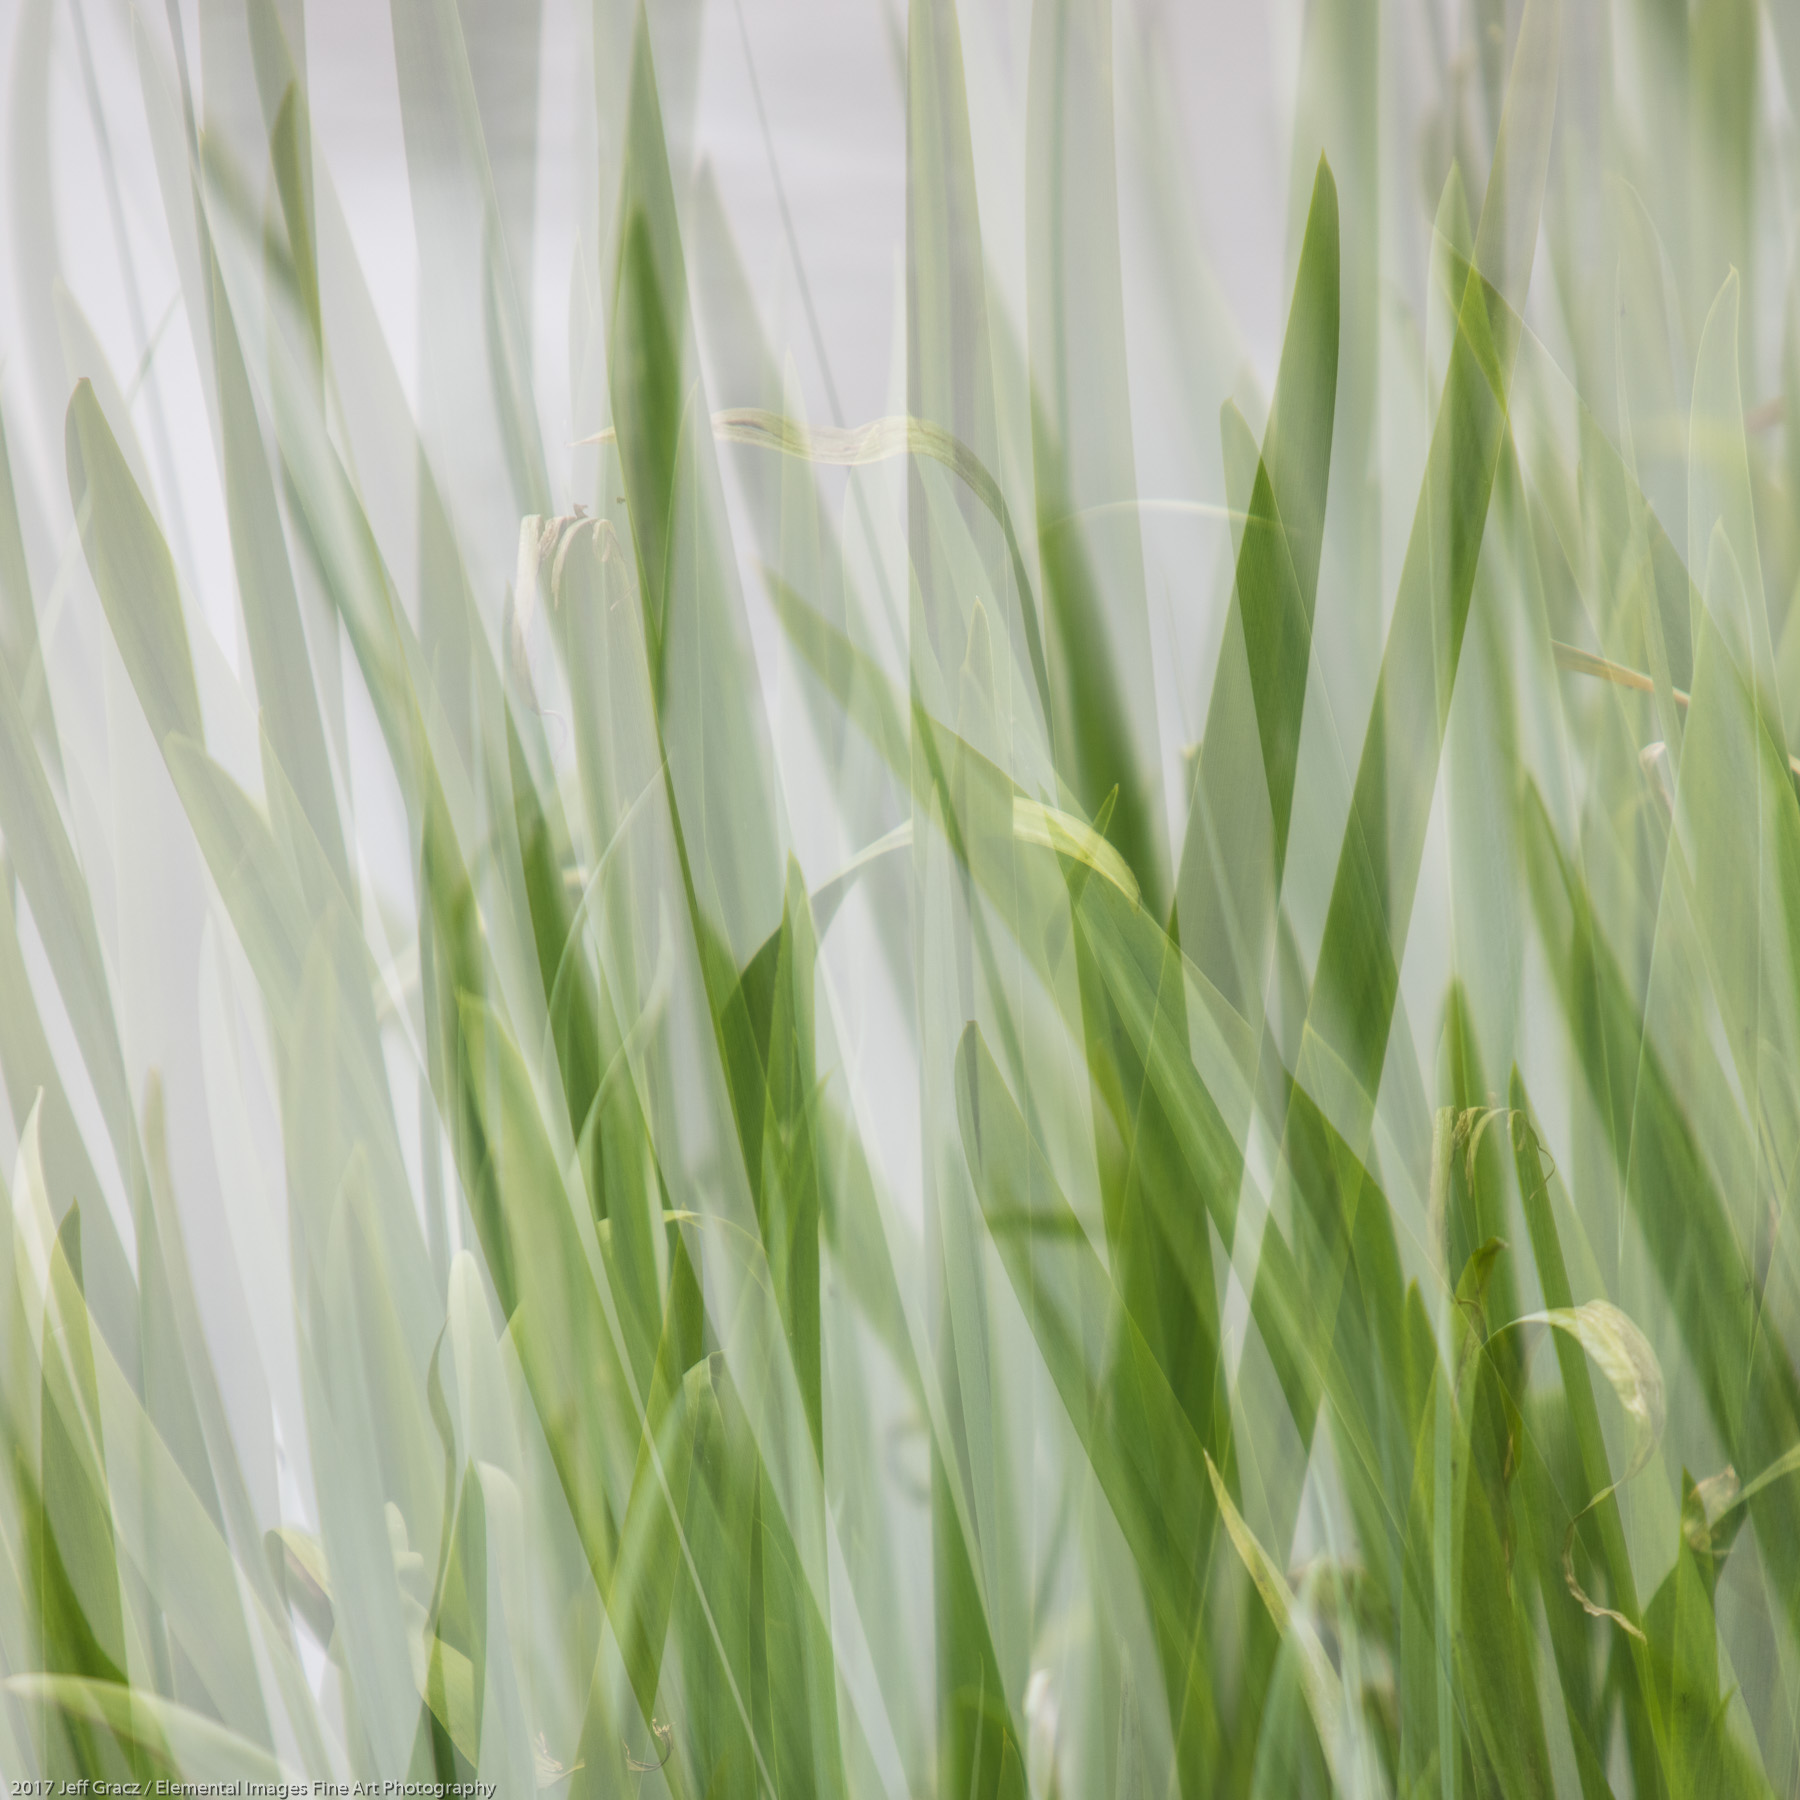 Grasses #142 | Portland | OR | USA - © 2017 Jeff Gracz / Elemental Images Fine Art Photography - All Rights Reserved Worldwide